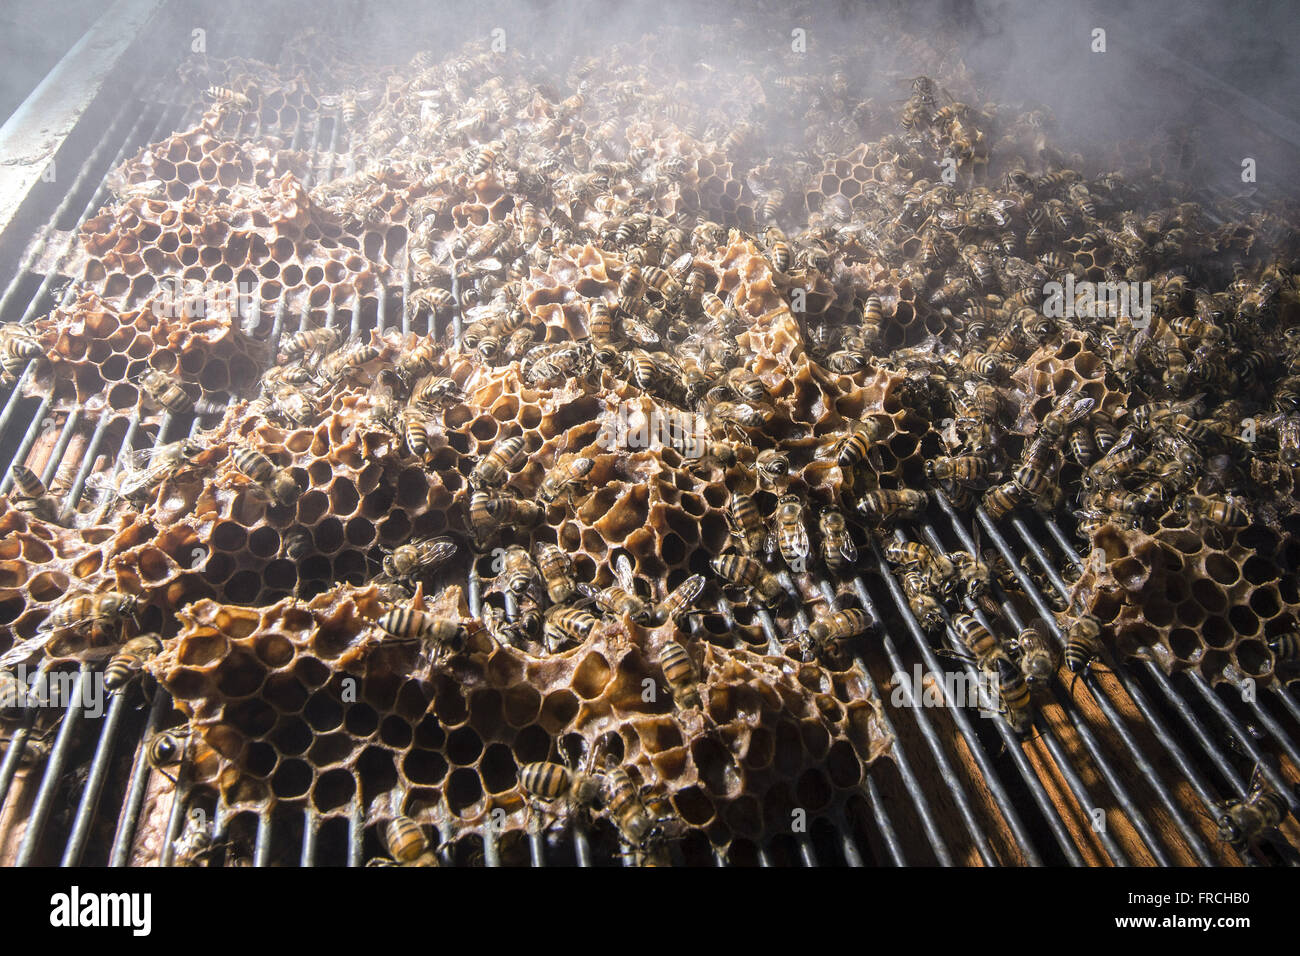 Apiary - Detail of bees in the supers or bees after fumigation box - Stock Image